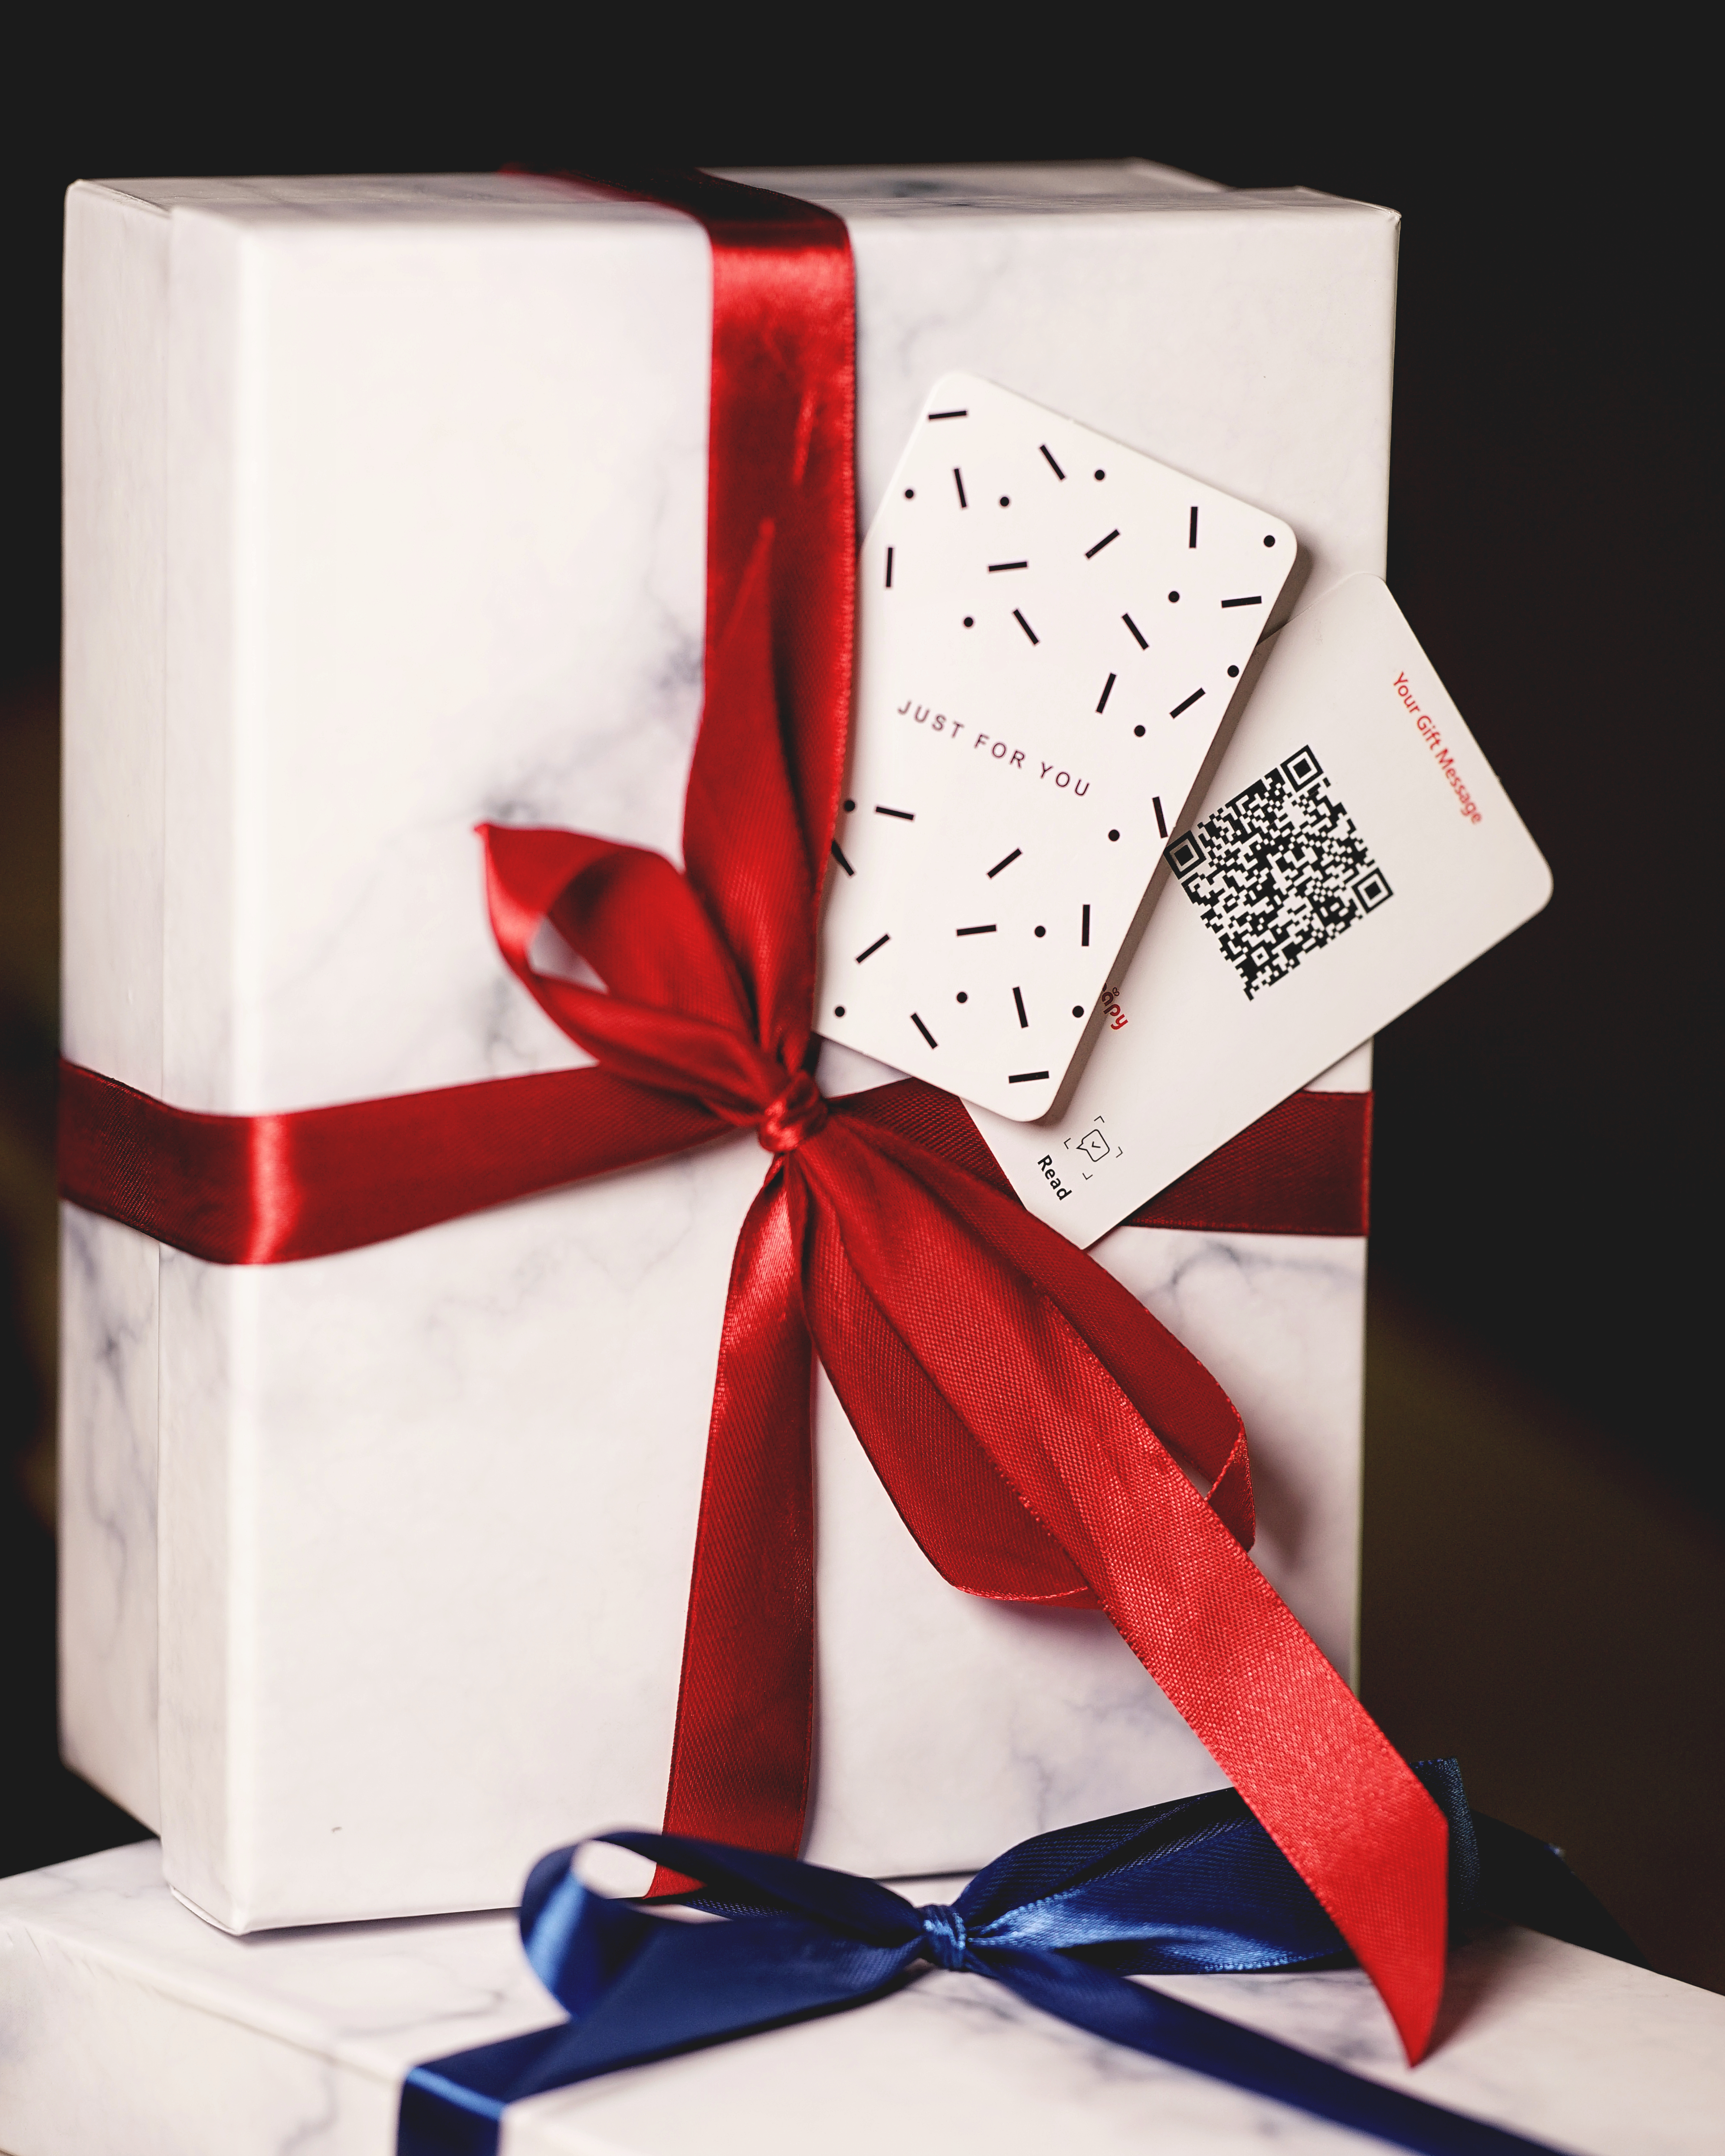 Gift Wrap 8 - Sneapy